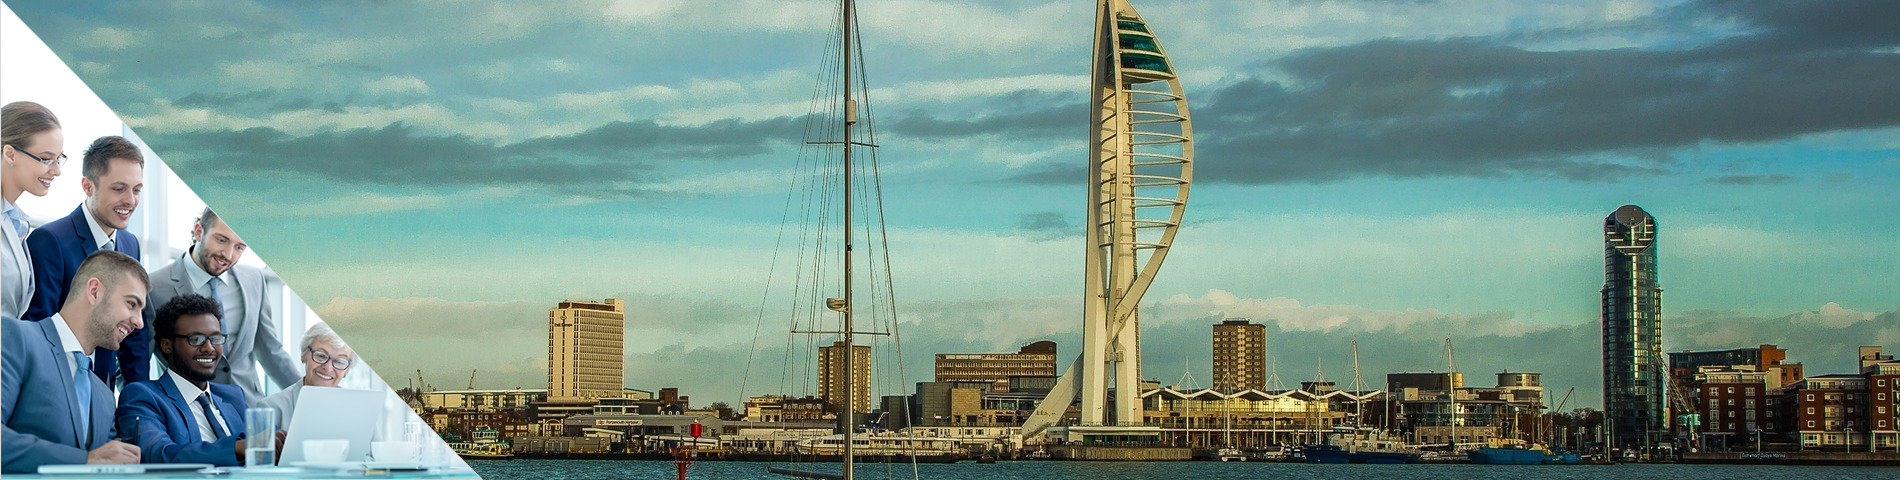 Portsmouth - Business en Groupe